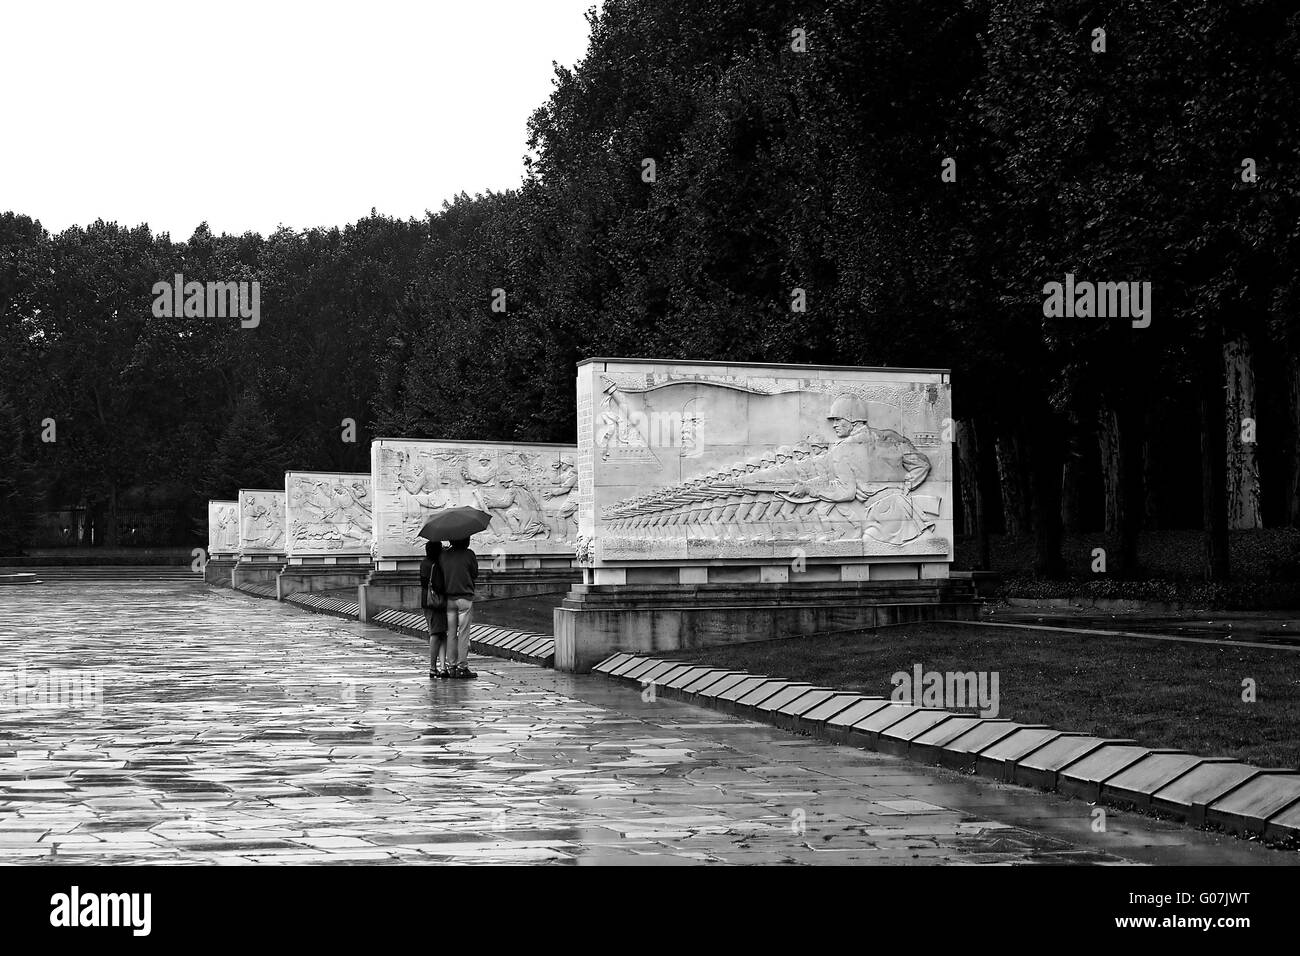 In the rain at a Memorial - Stock Image